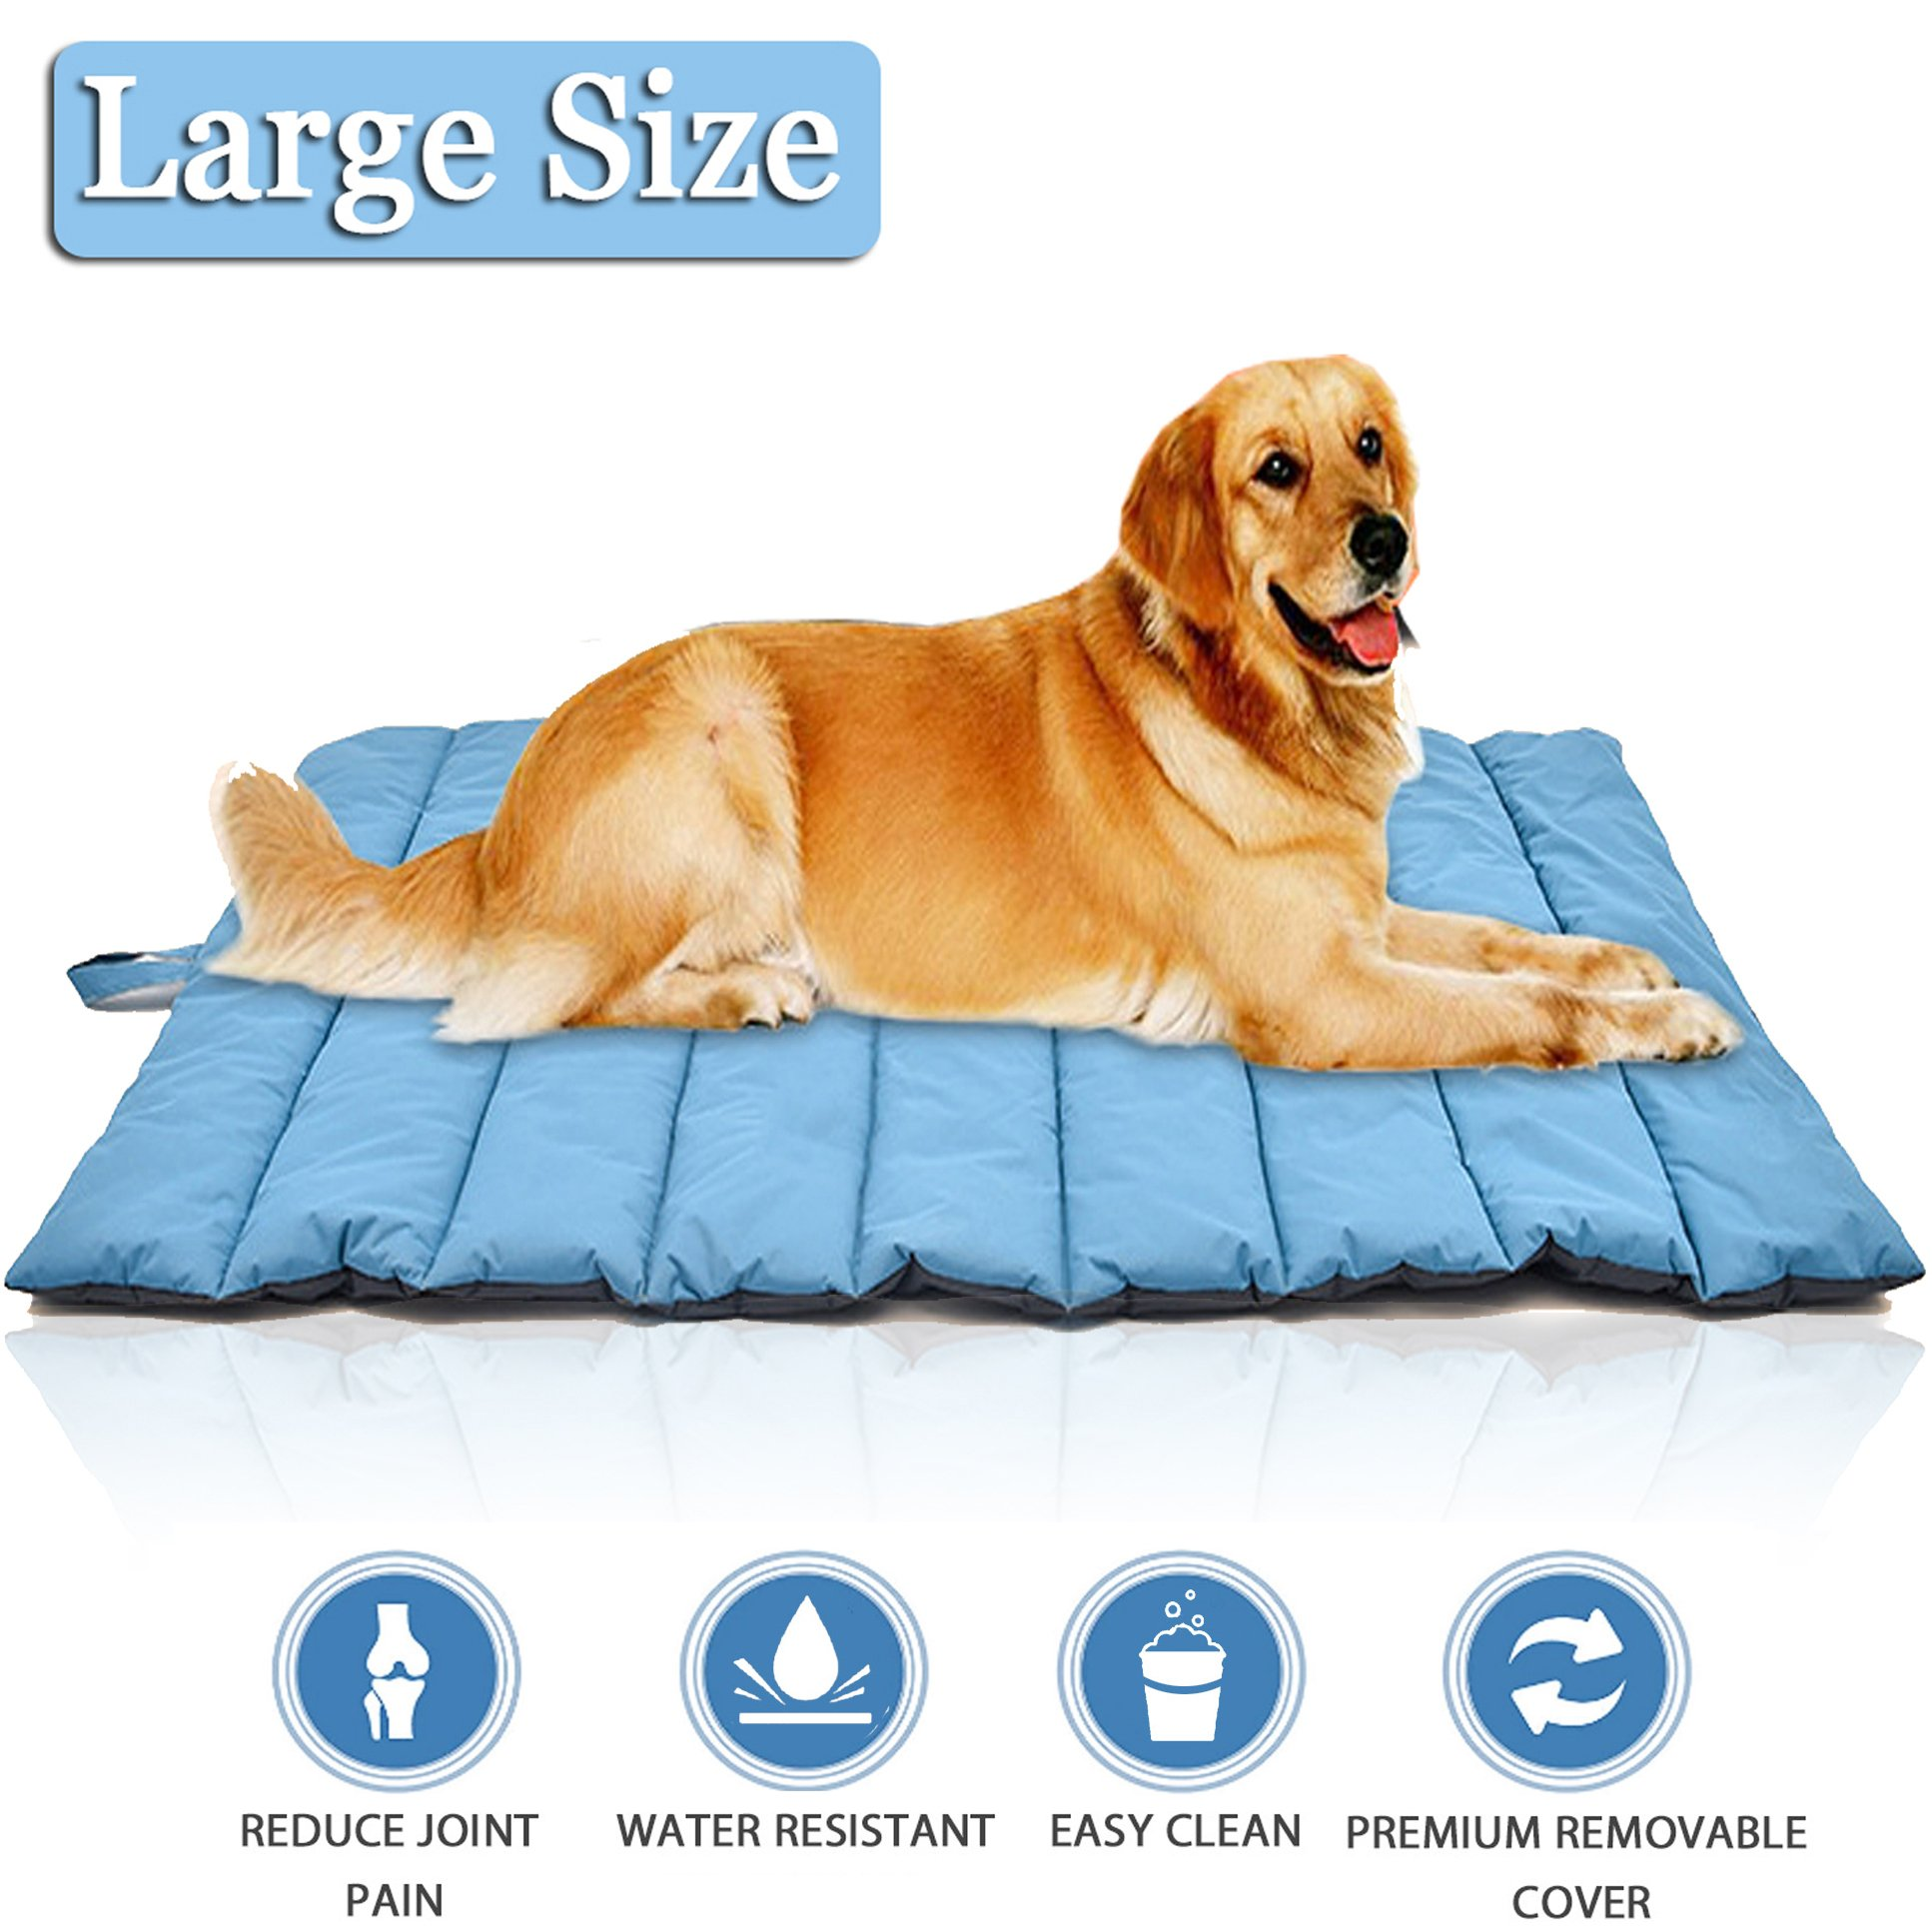 Lifepul Portable Pets Bed Mat, Soft Dog & Cat Bed Cover in Extra Large Size, Water-Resistant Puppy Cat Bed Blankets for Indoor Outdoor Use - Perfect for Funiture, Floors, Car Seats, Lawn, Couches by Lifepul